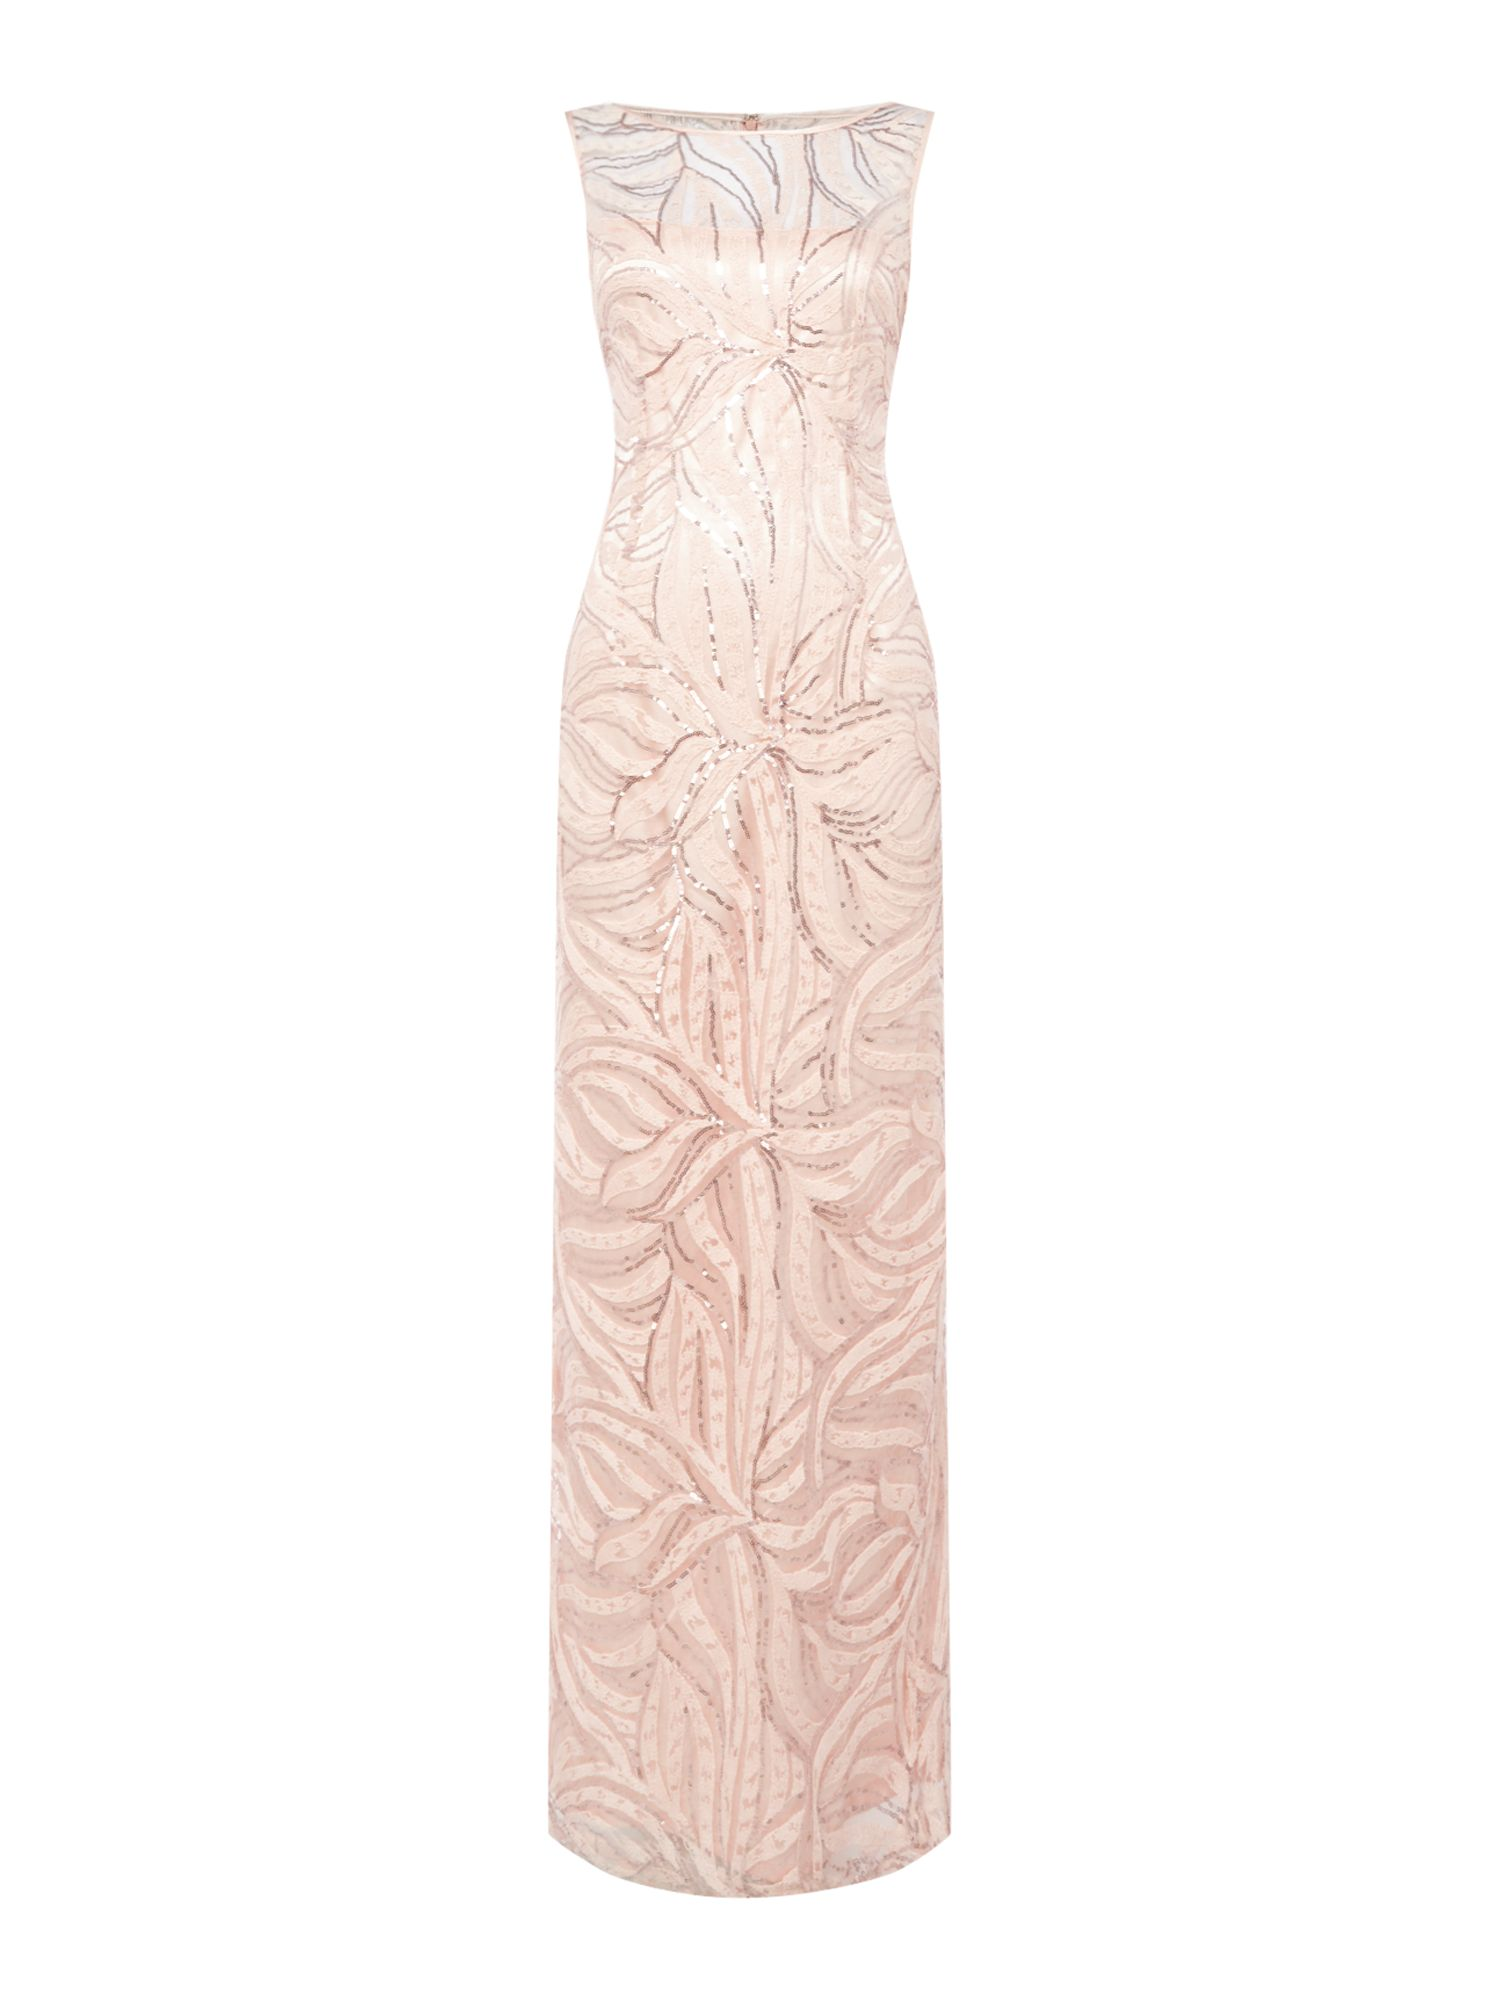 Tahari ASL Sequined Silver Gown, Pink